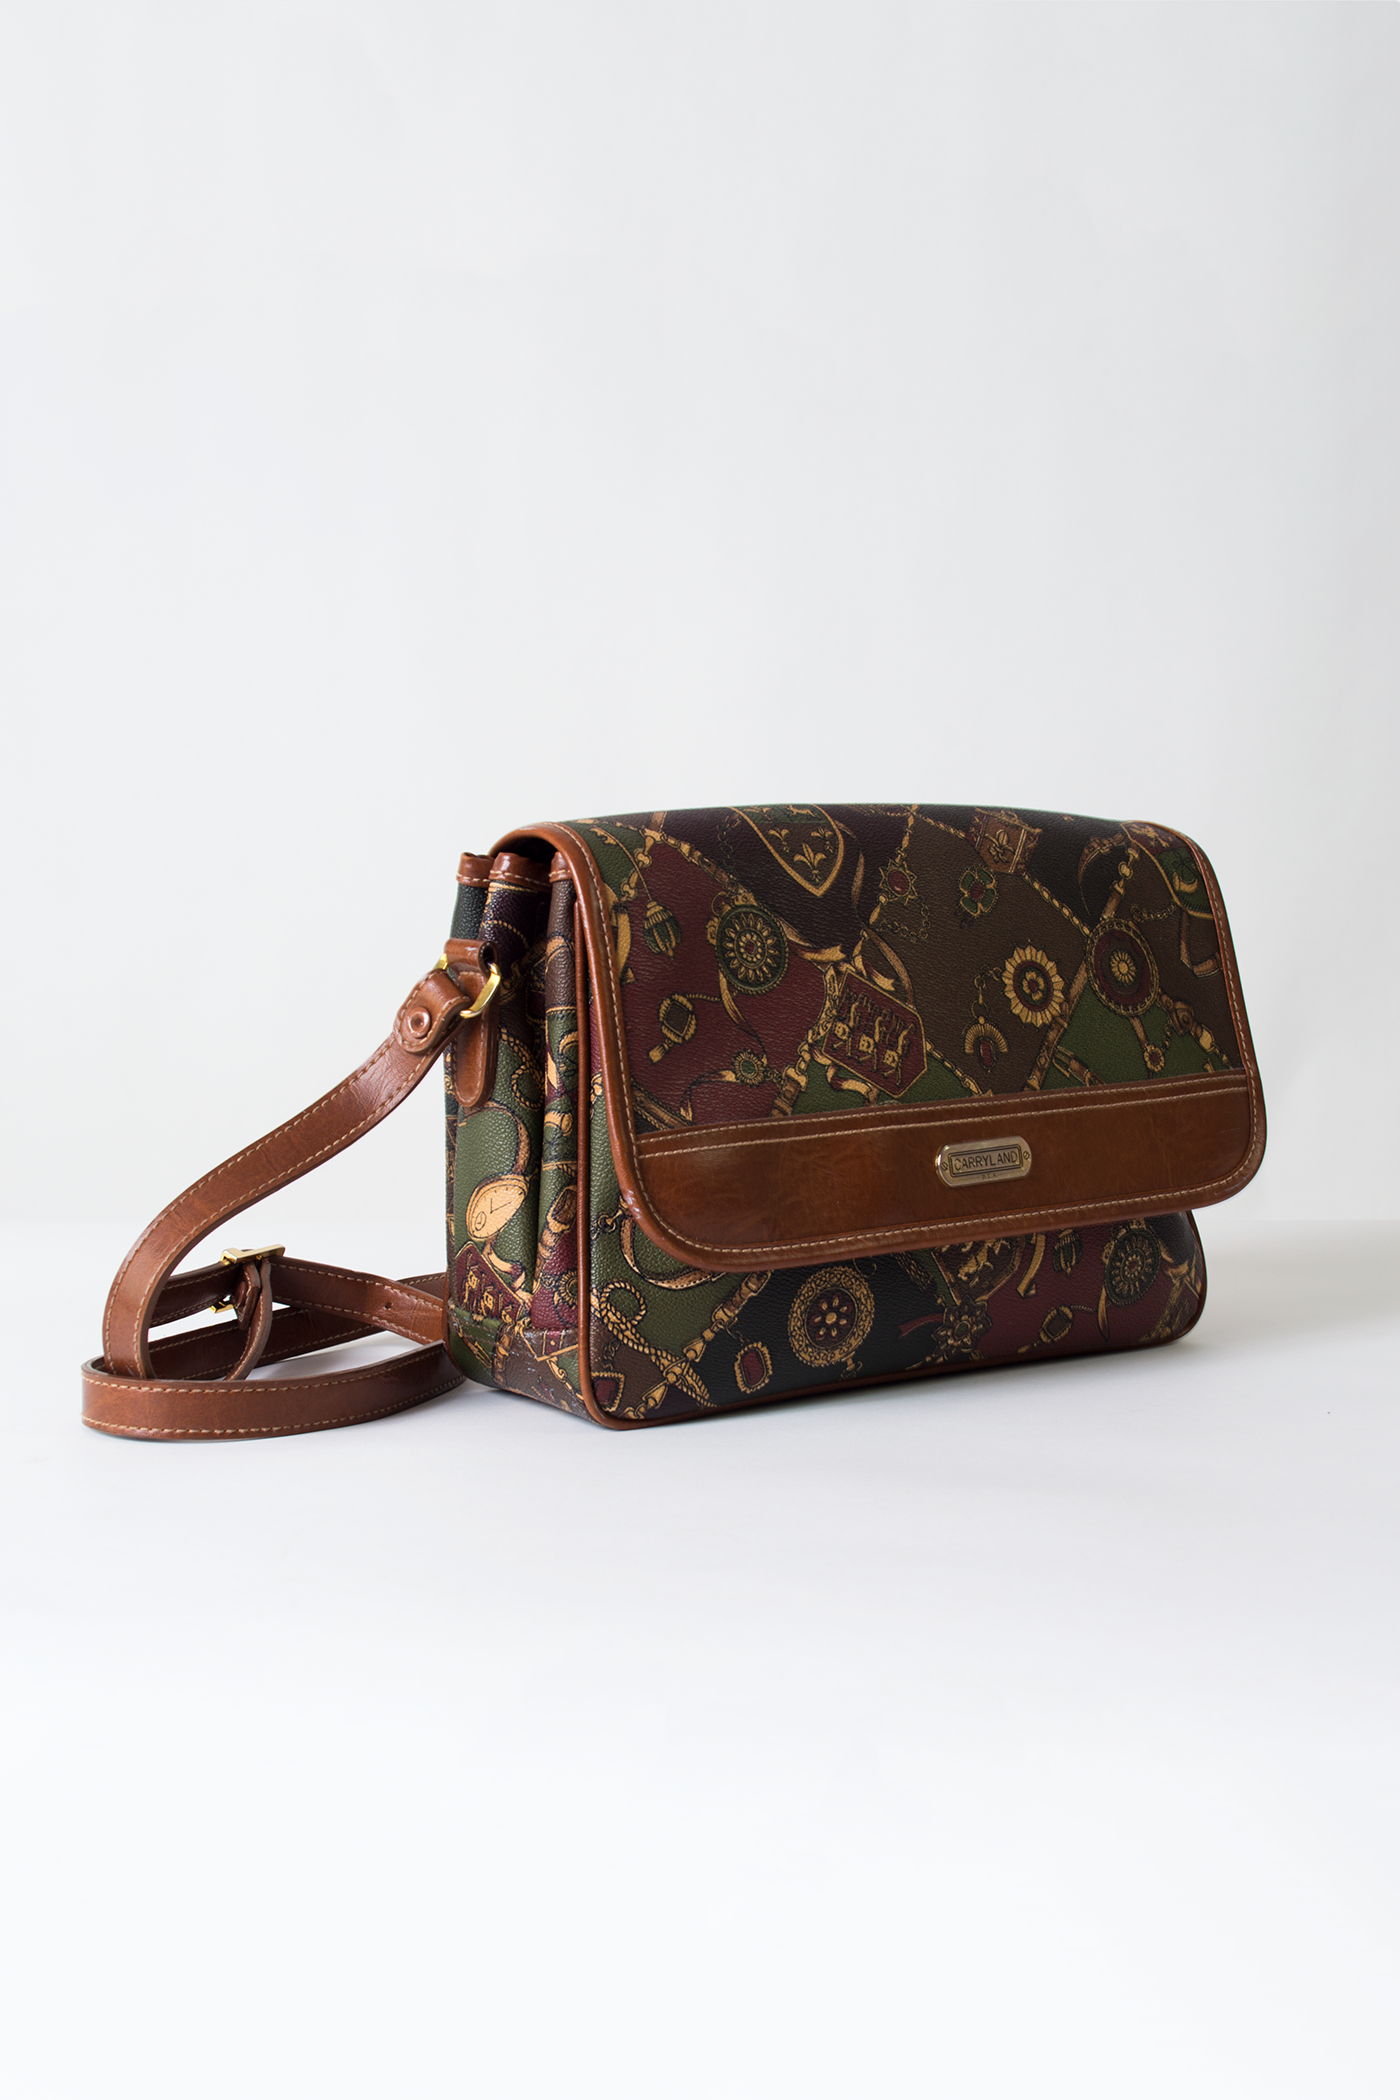 vintage multi-color print leather crossbody bag